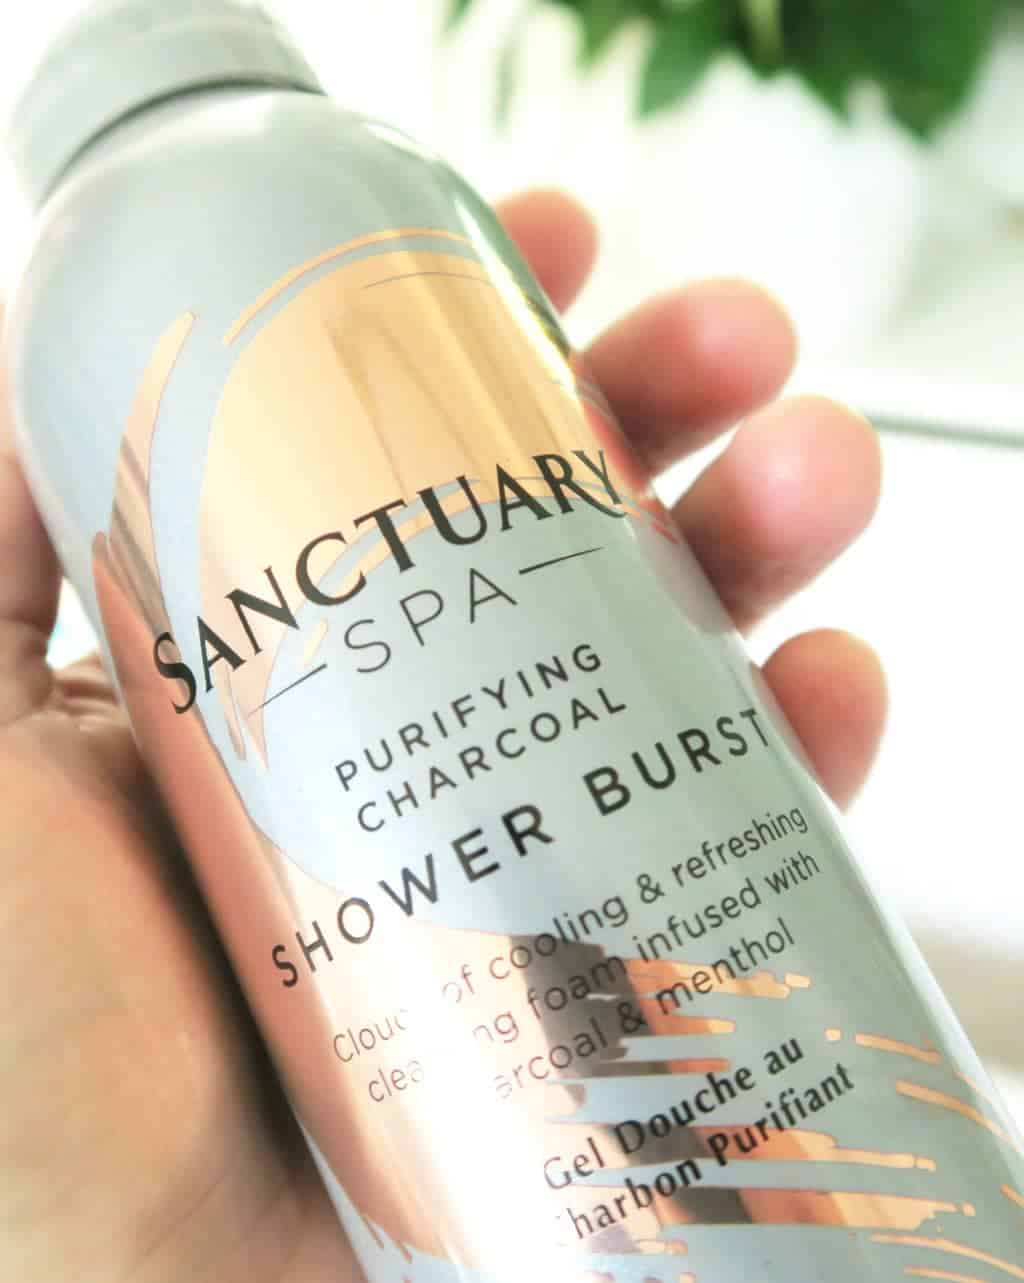 Sanctuary Spa Products Review — Sanctuary Spa Purifying Charcoal Shower Burst